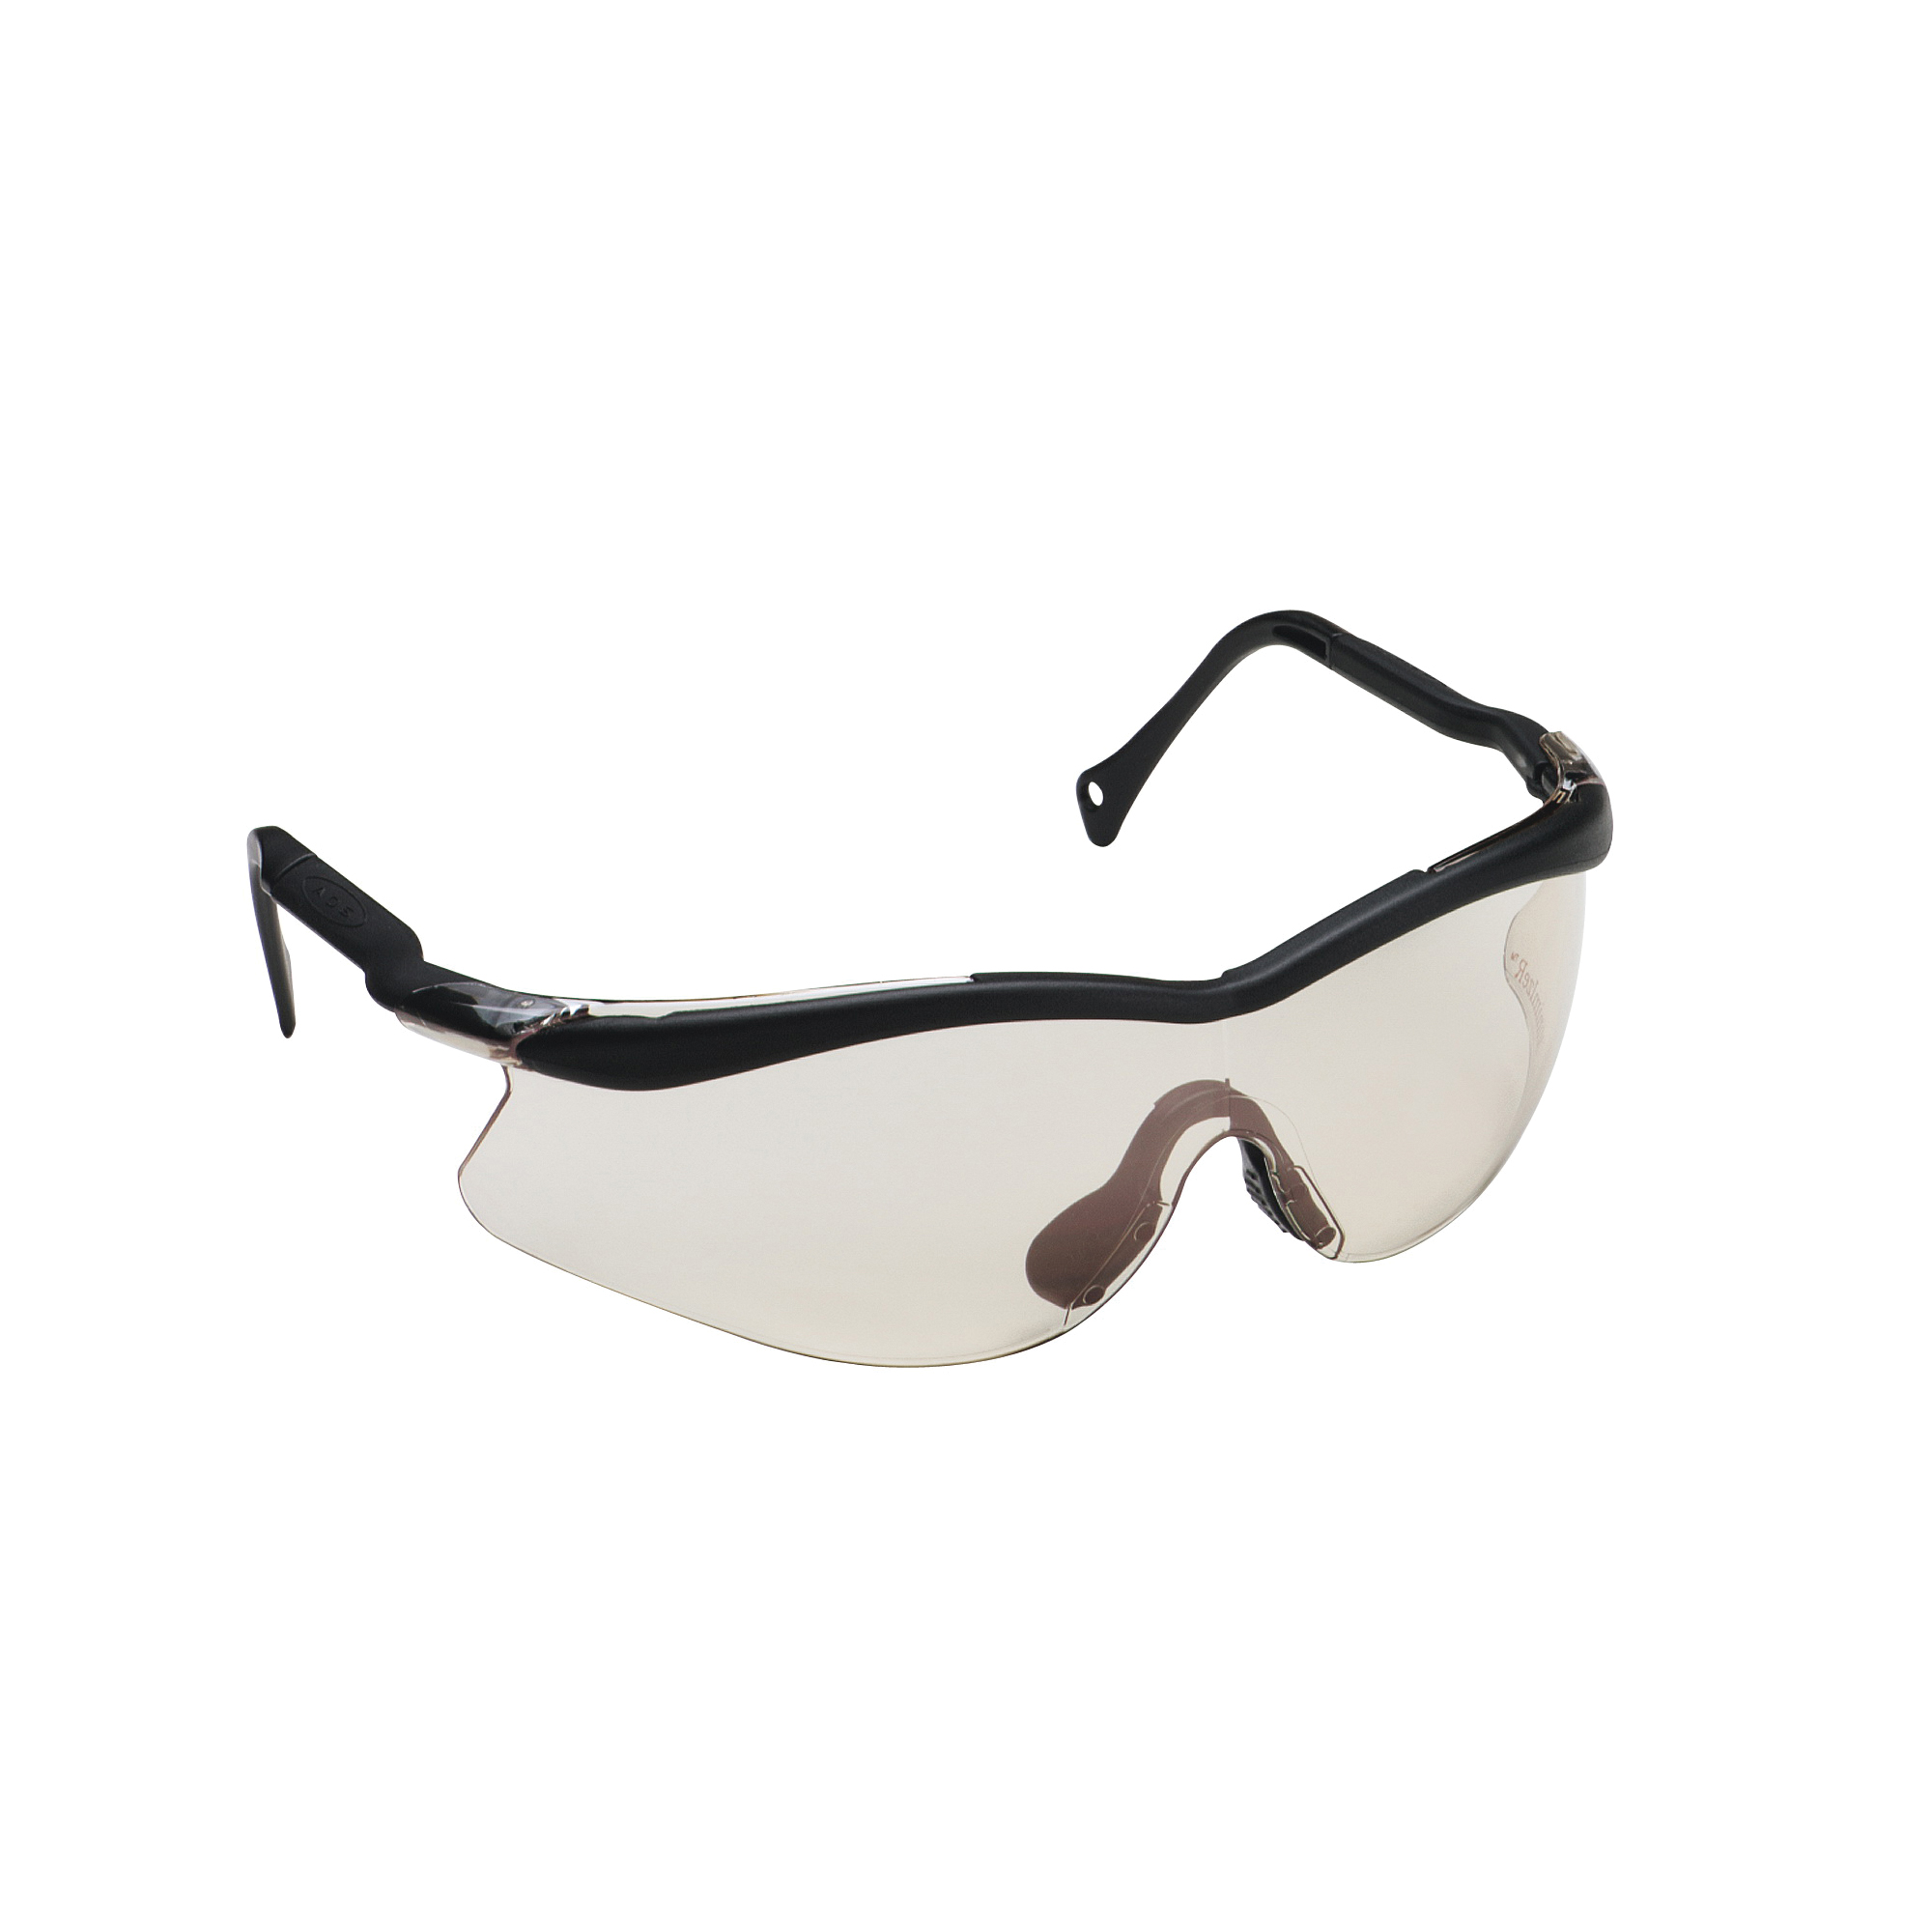 3M™ QX™ 078371-62227 12180-10000-20 Lightweight Safety Glasses, Anti-Scratch MinimIzeR™ Lens, Half Framed Black Plastic Frame, Polycarbonate Lens, Specifications Met: ANSI Z87.1-2015